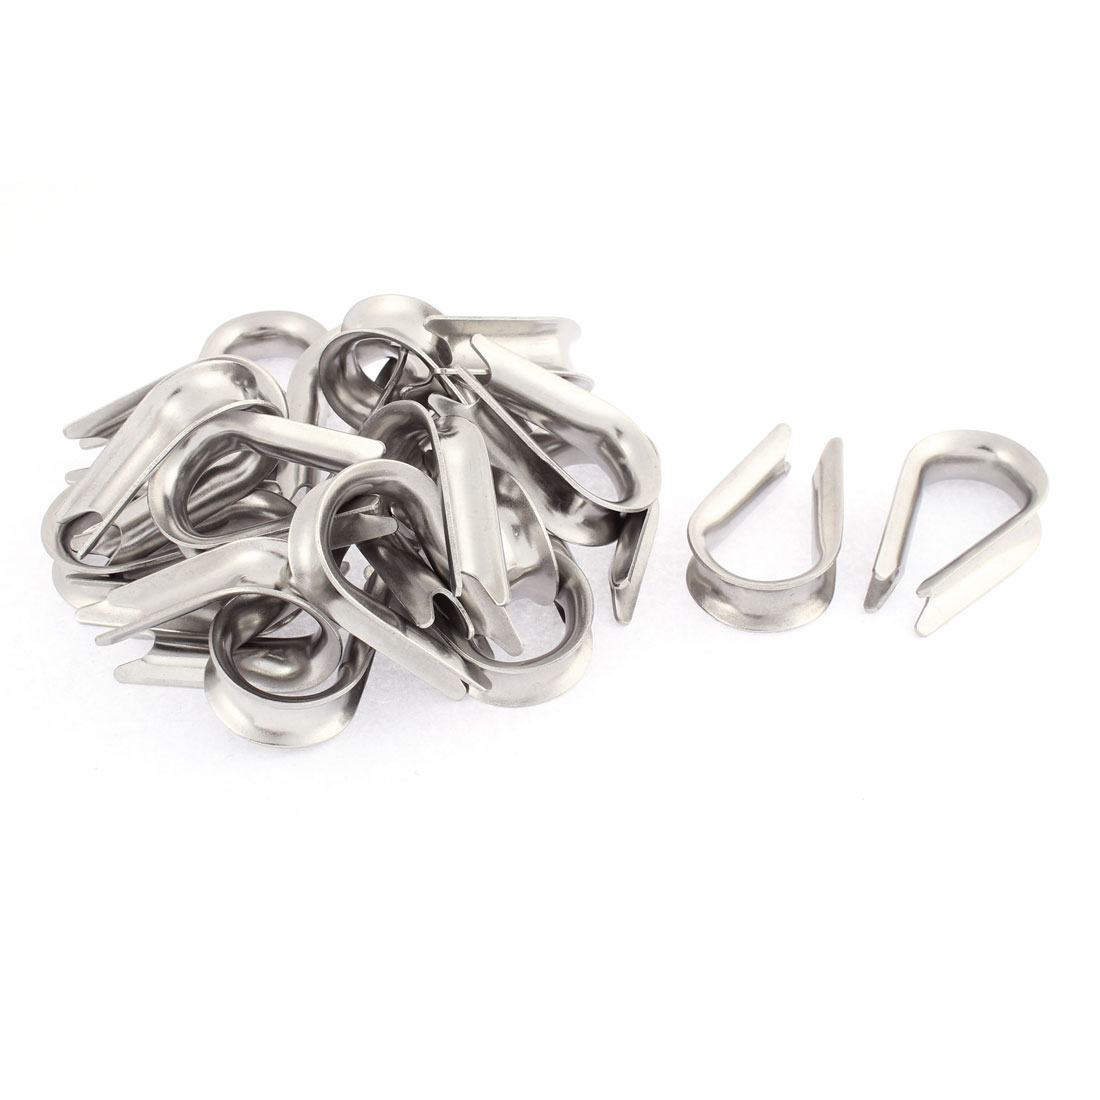 Stainless Steel 10mm Standard Wire Rope Cable Thimbles Silver Tone 20pcs